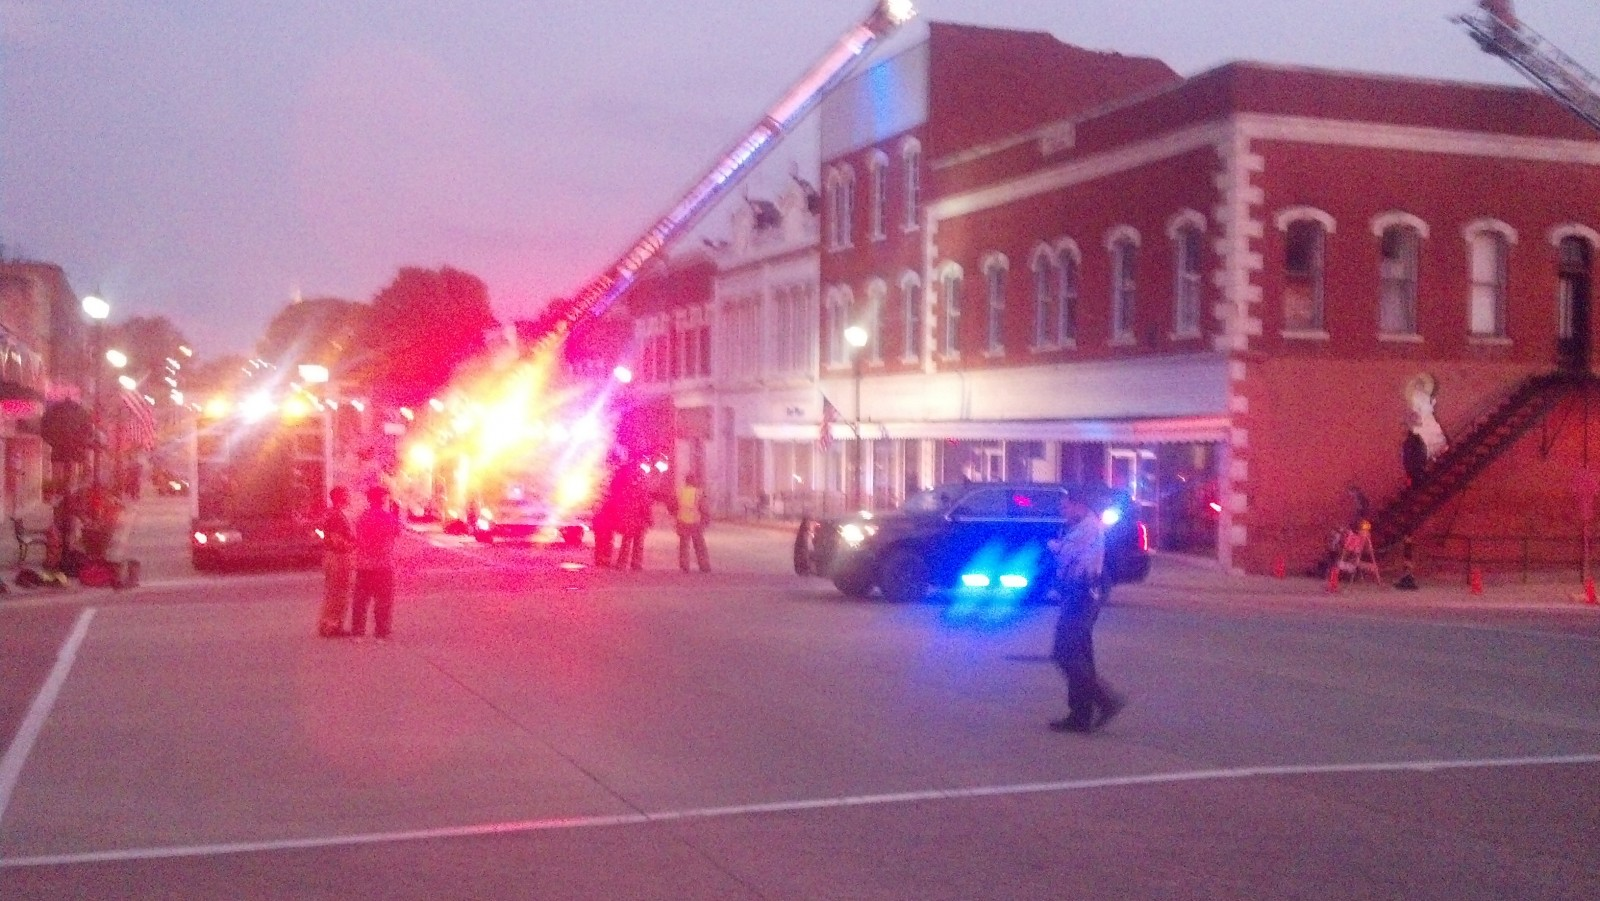 Emergency crews in downtown Vandalia this morning for apparent building collapse